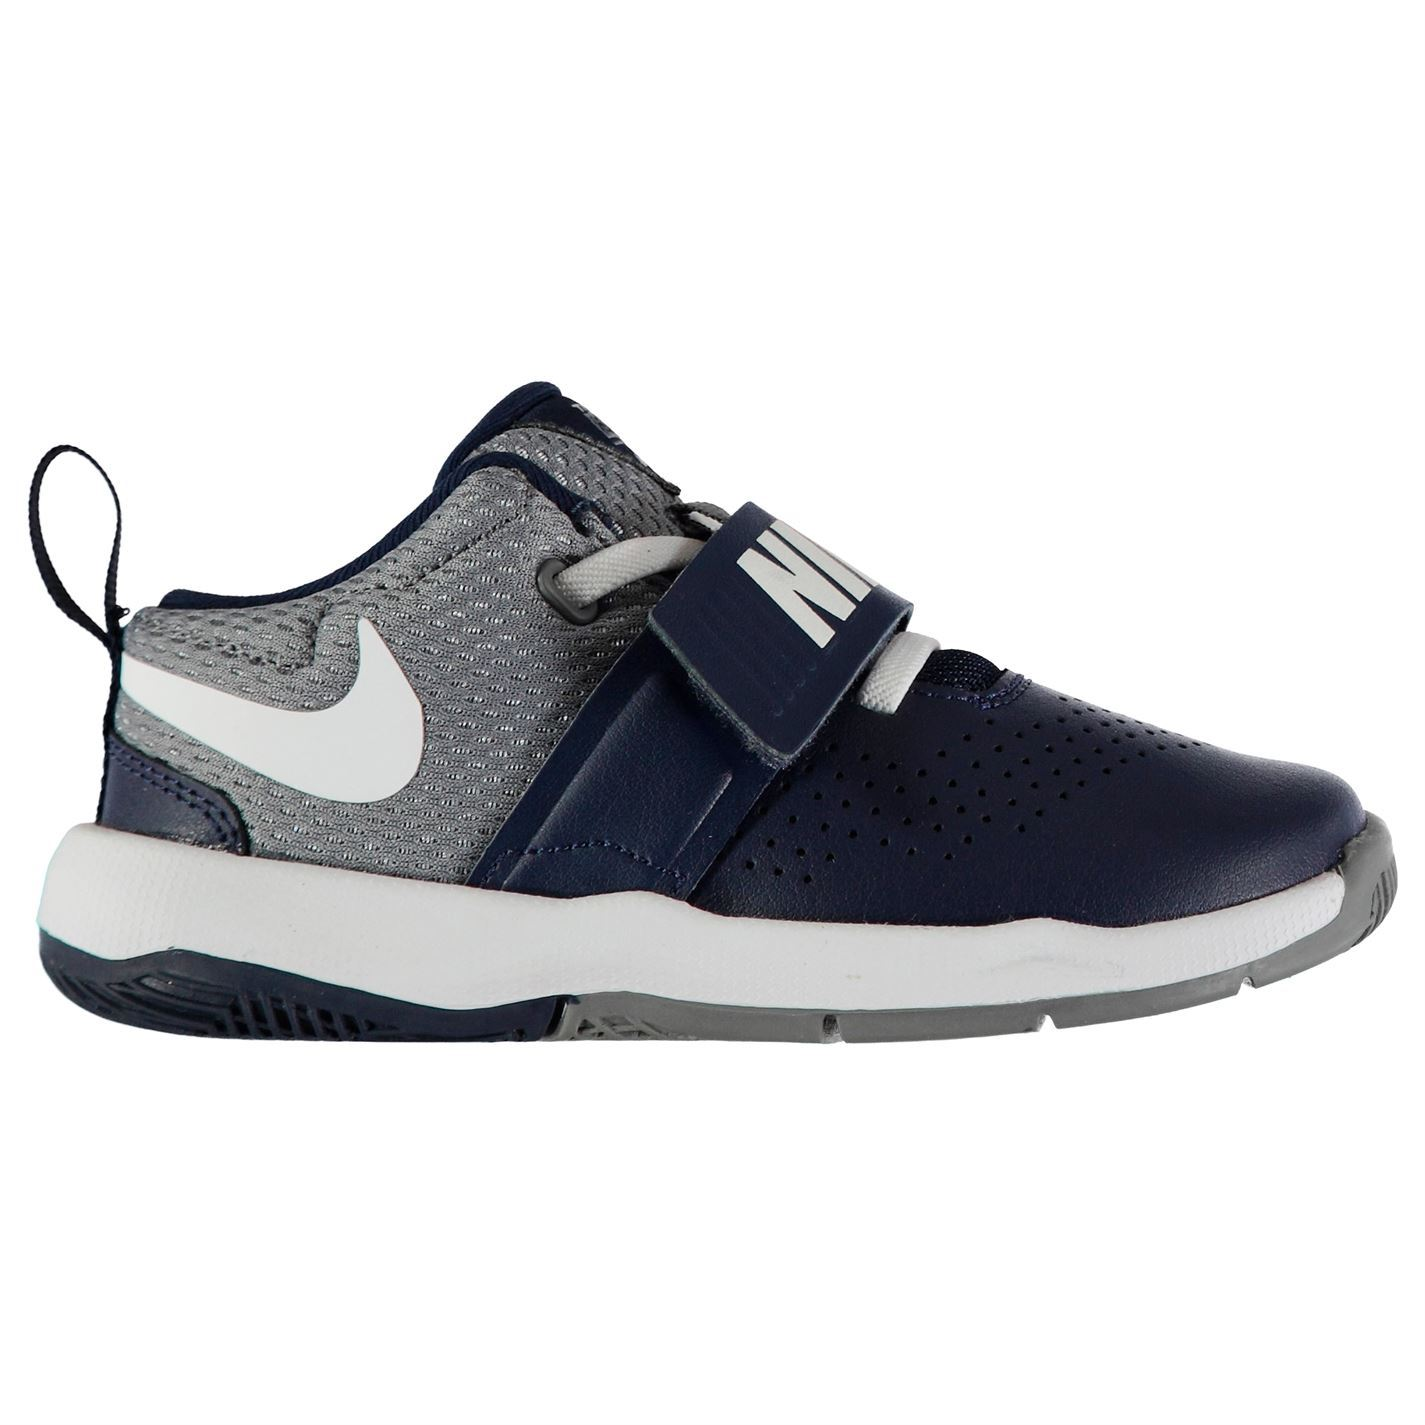 db46a32bde9 ... Nike Team Hustle D8 Basketball Trainers Infant Boys Navy White Shoes  Footwear ...